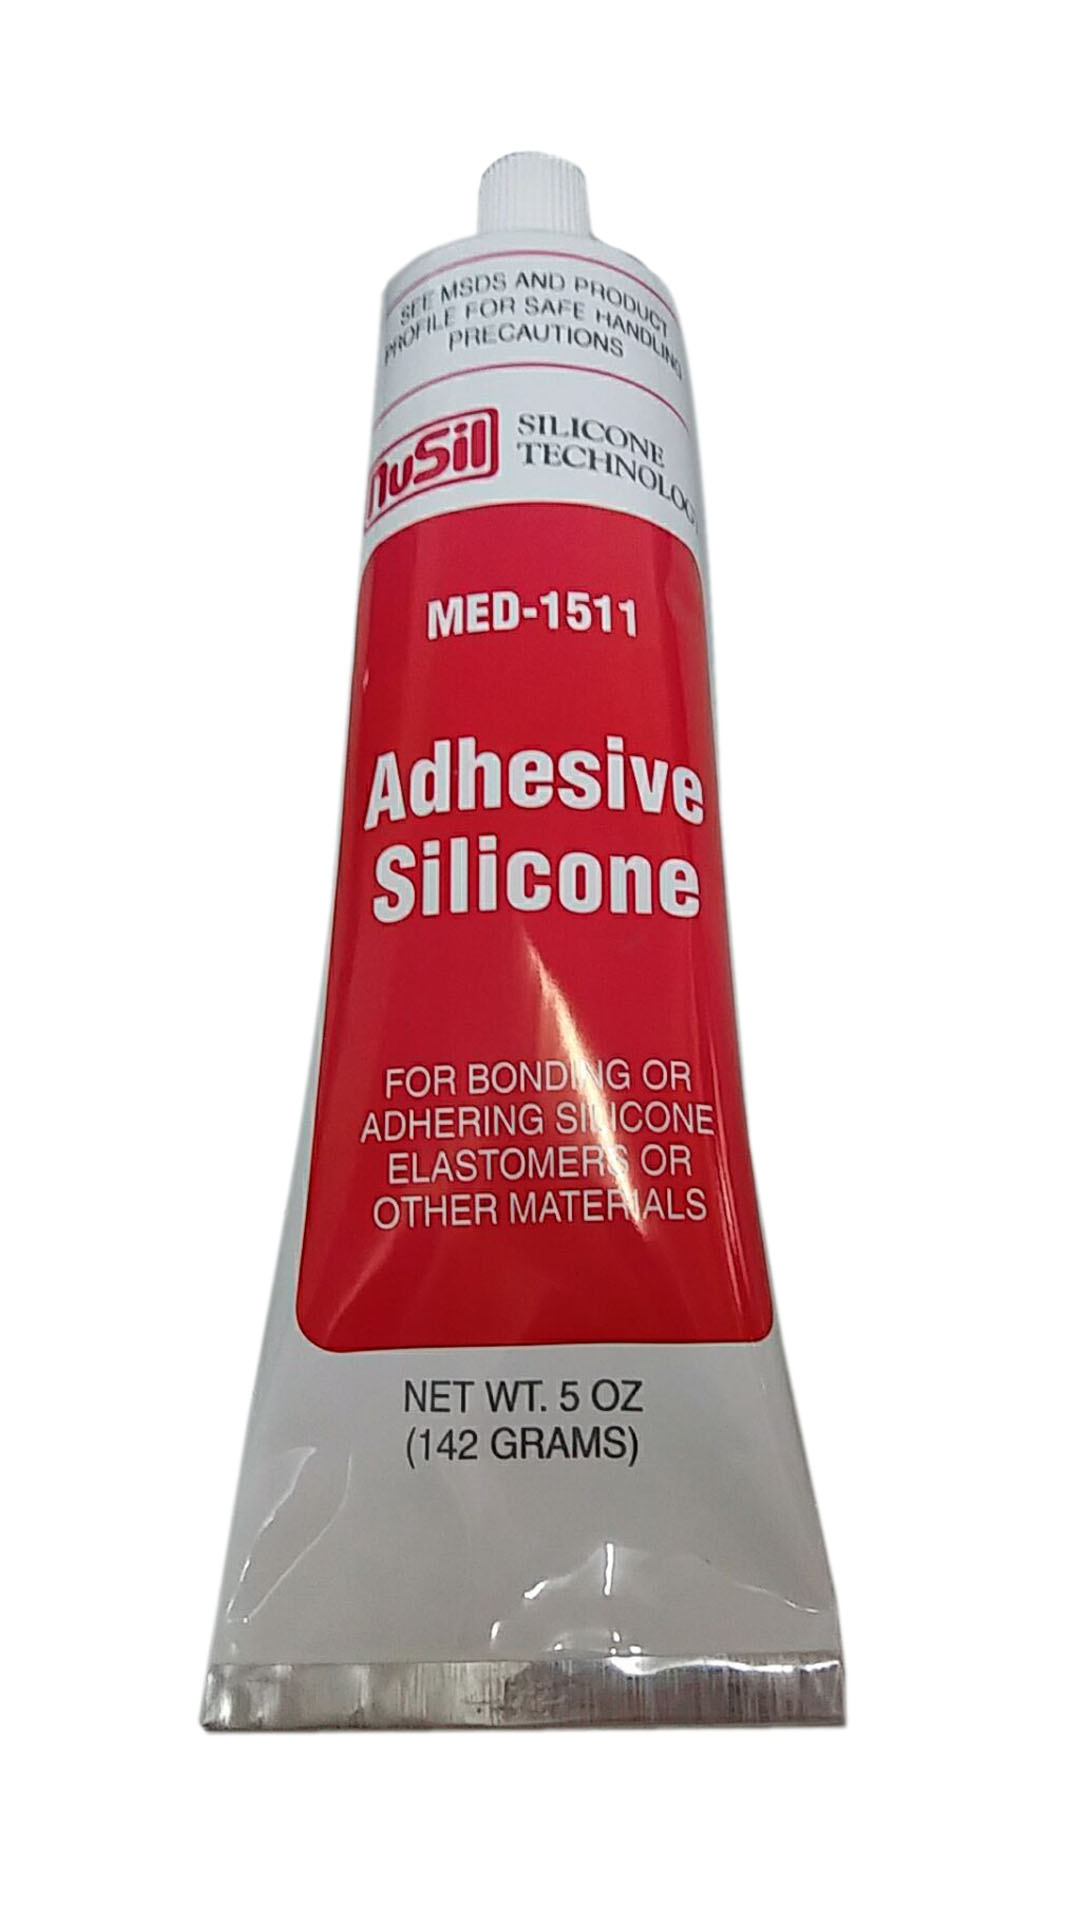 Nusil MED-1511 SILICONE ADHESIVE   医用级硅胶粘接剂| Nusil MED-1511